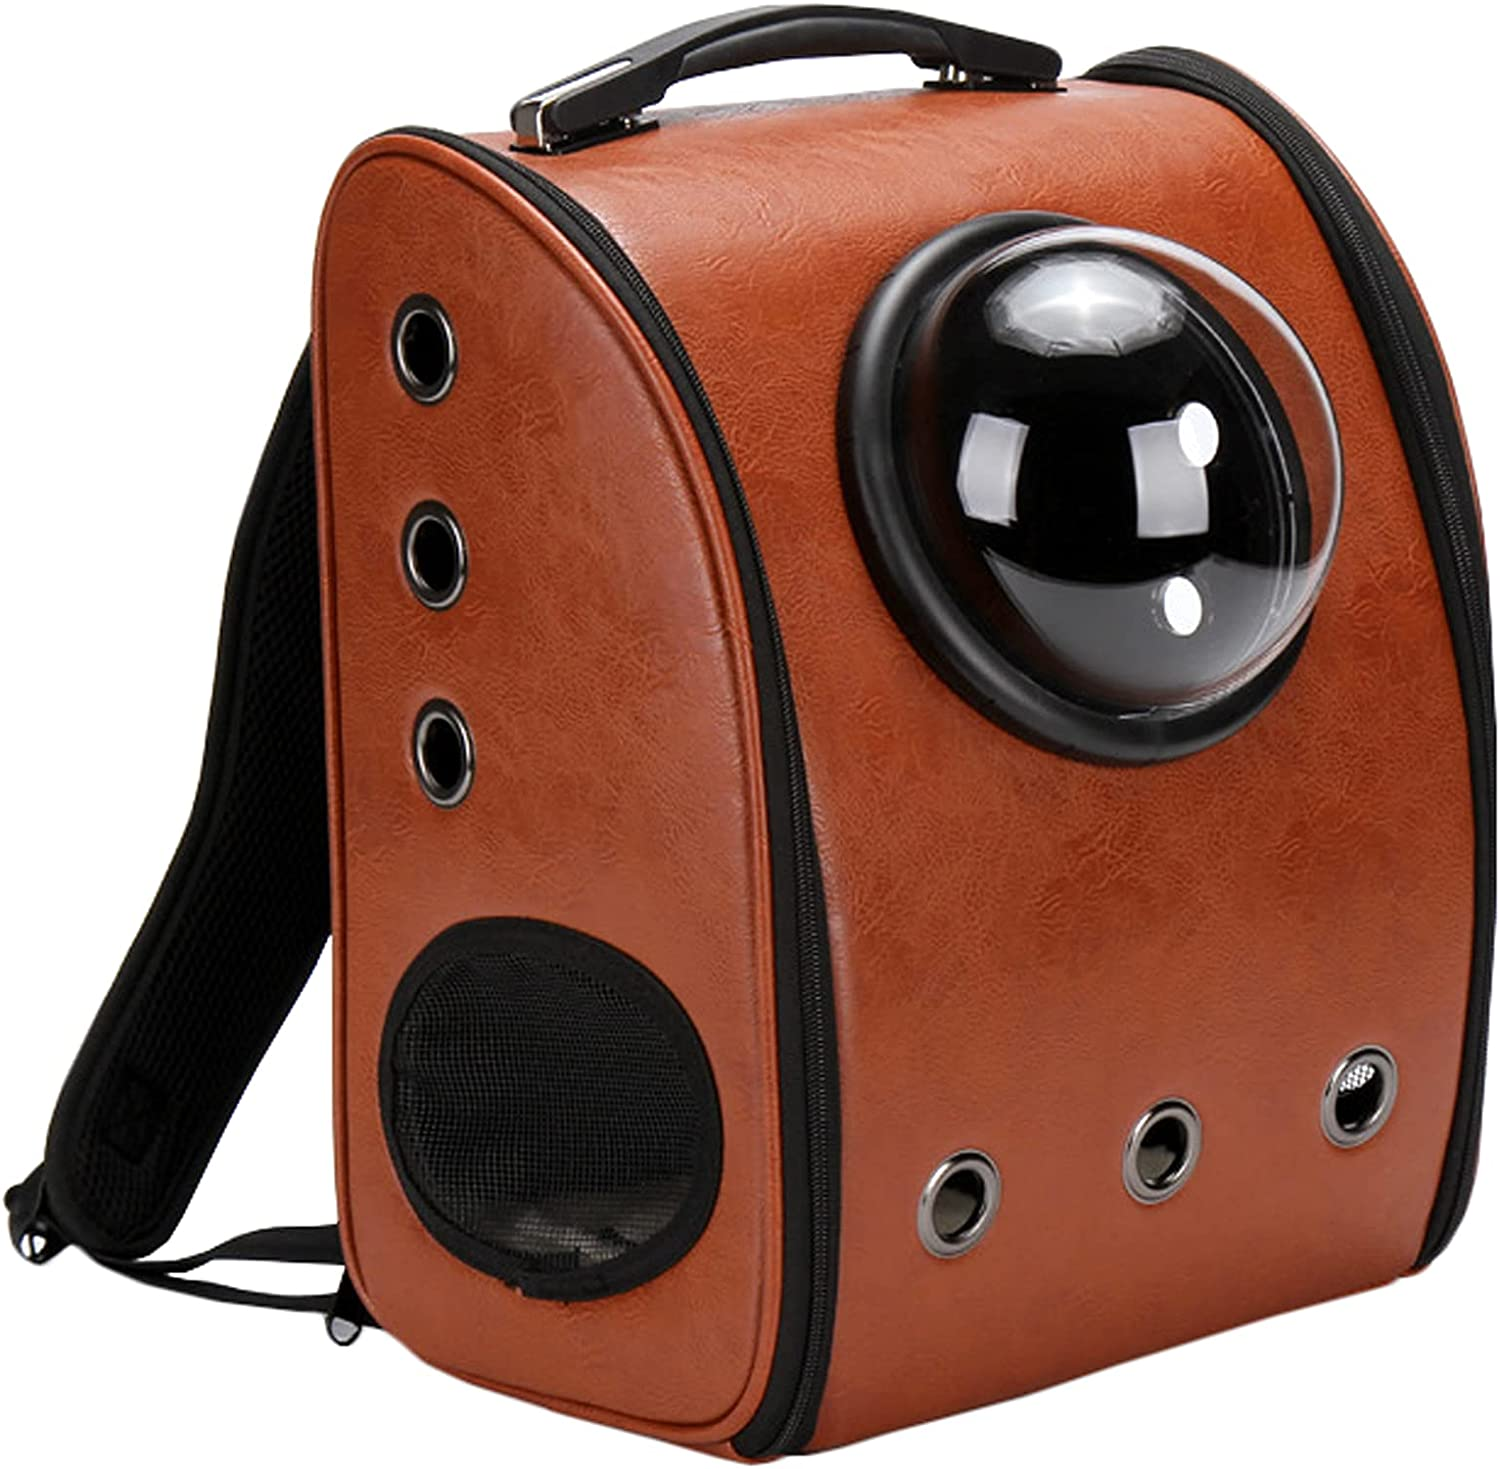 High quality new OldPAPA Cat Carrier Backpack - Space Bag Dog Breathable Max 51% OFF